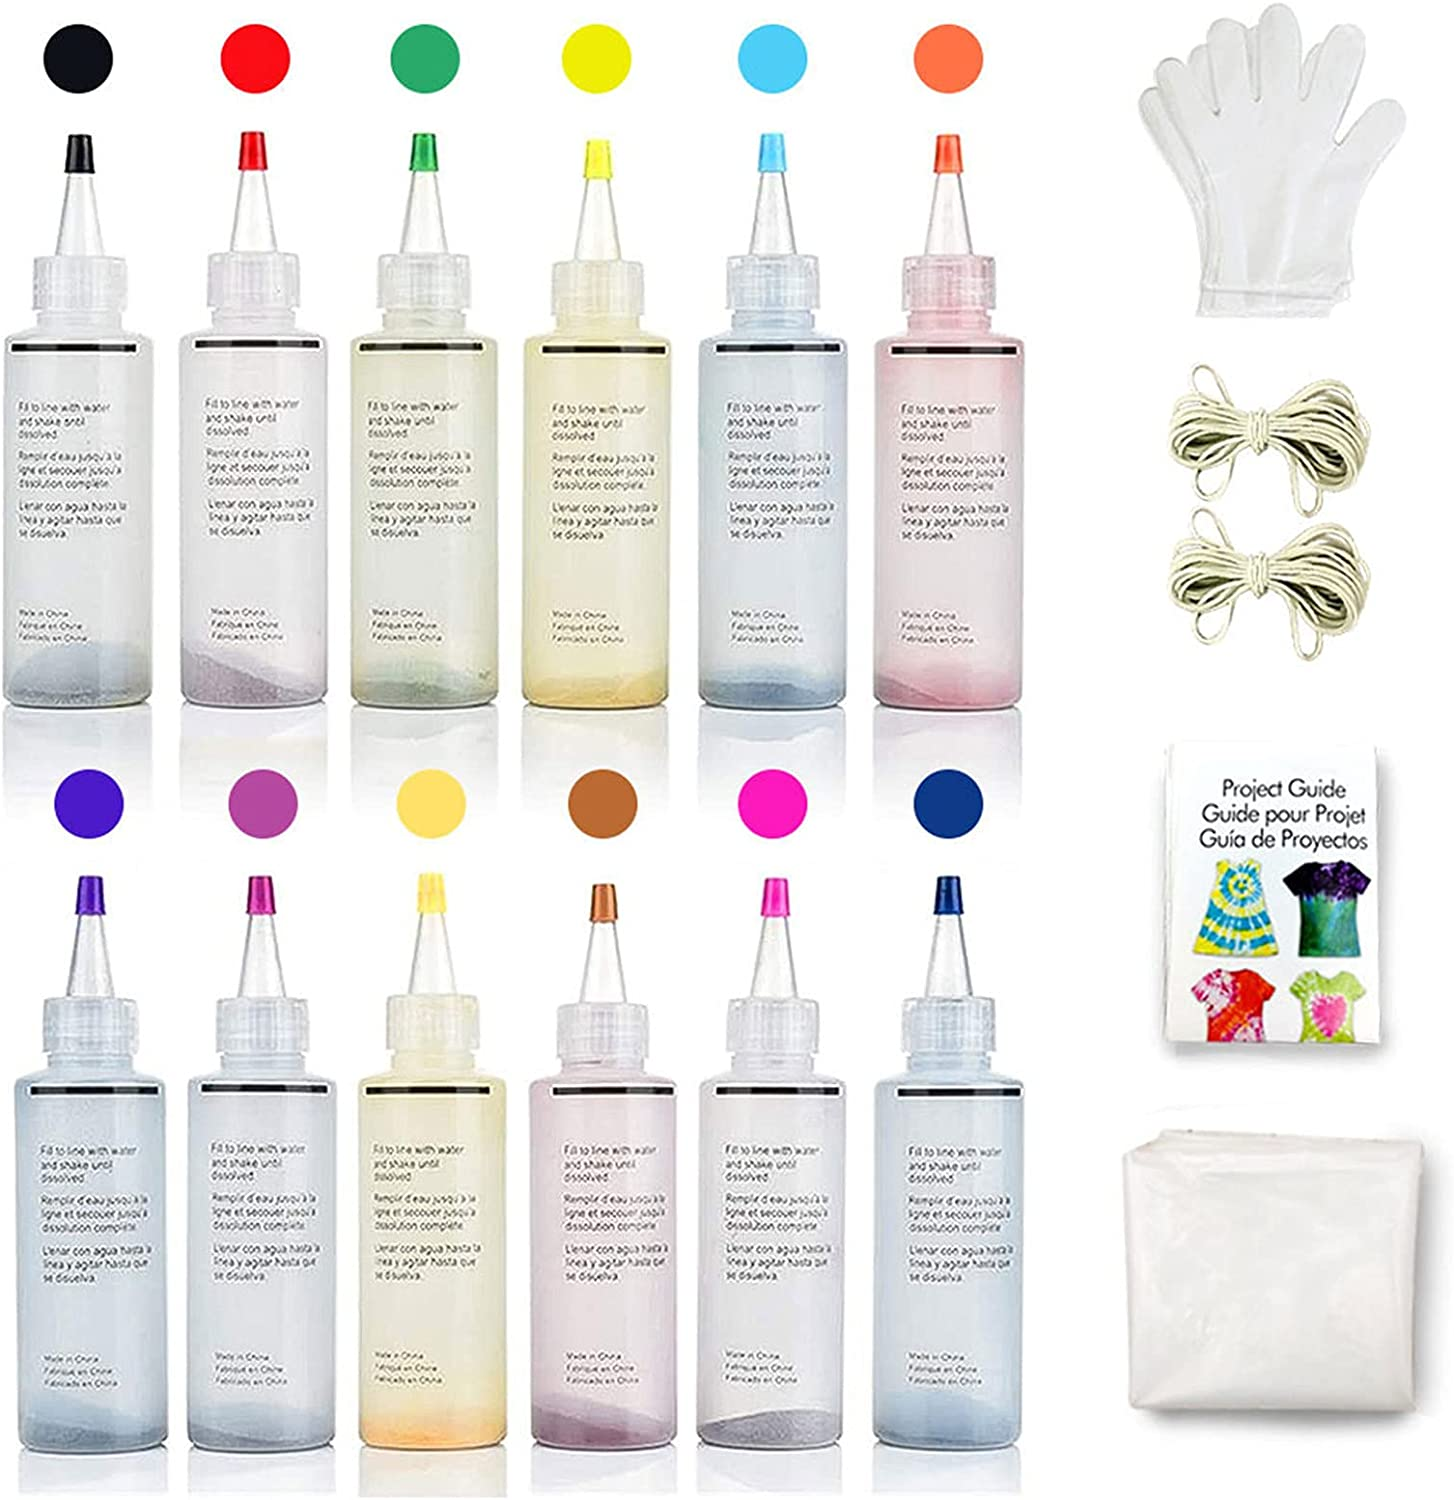 DoreenBow Tie Dye 12 Recommended Colors for Kit Kids Adults Max 78% OFF 120ml